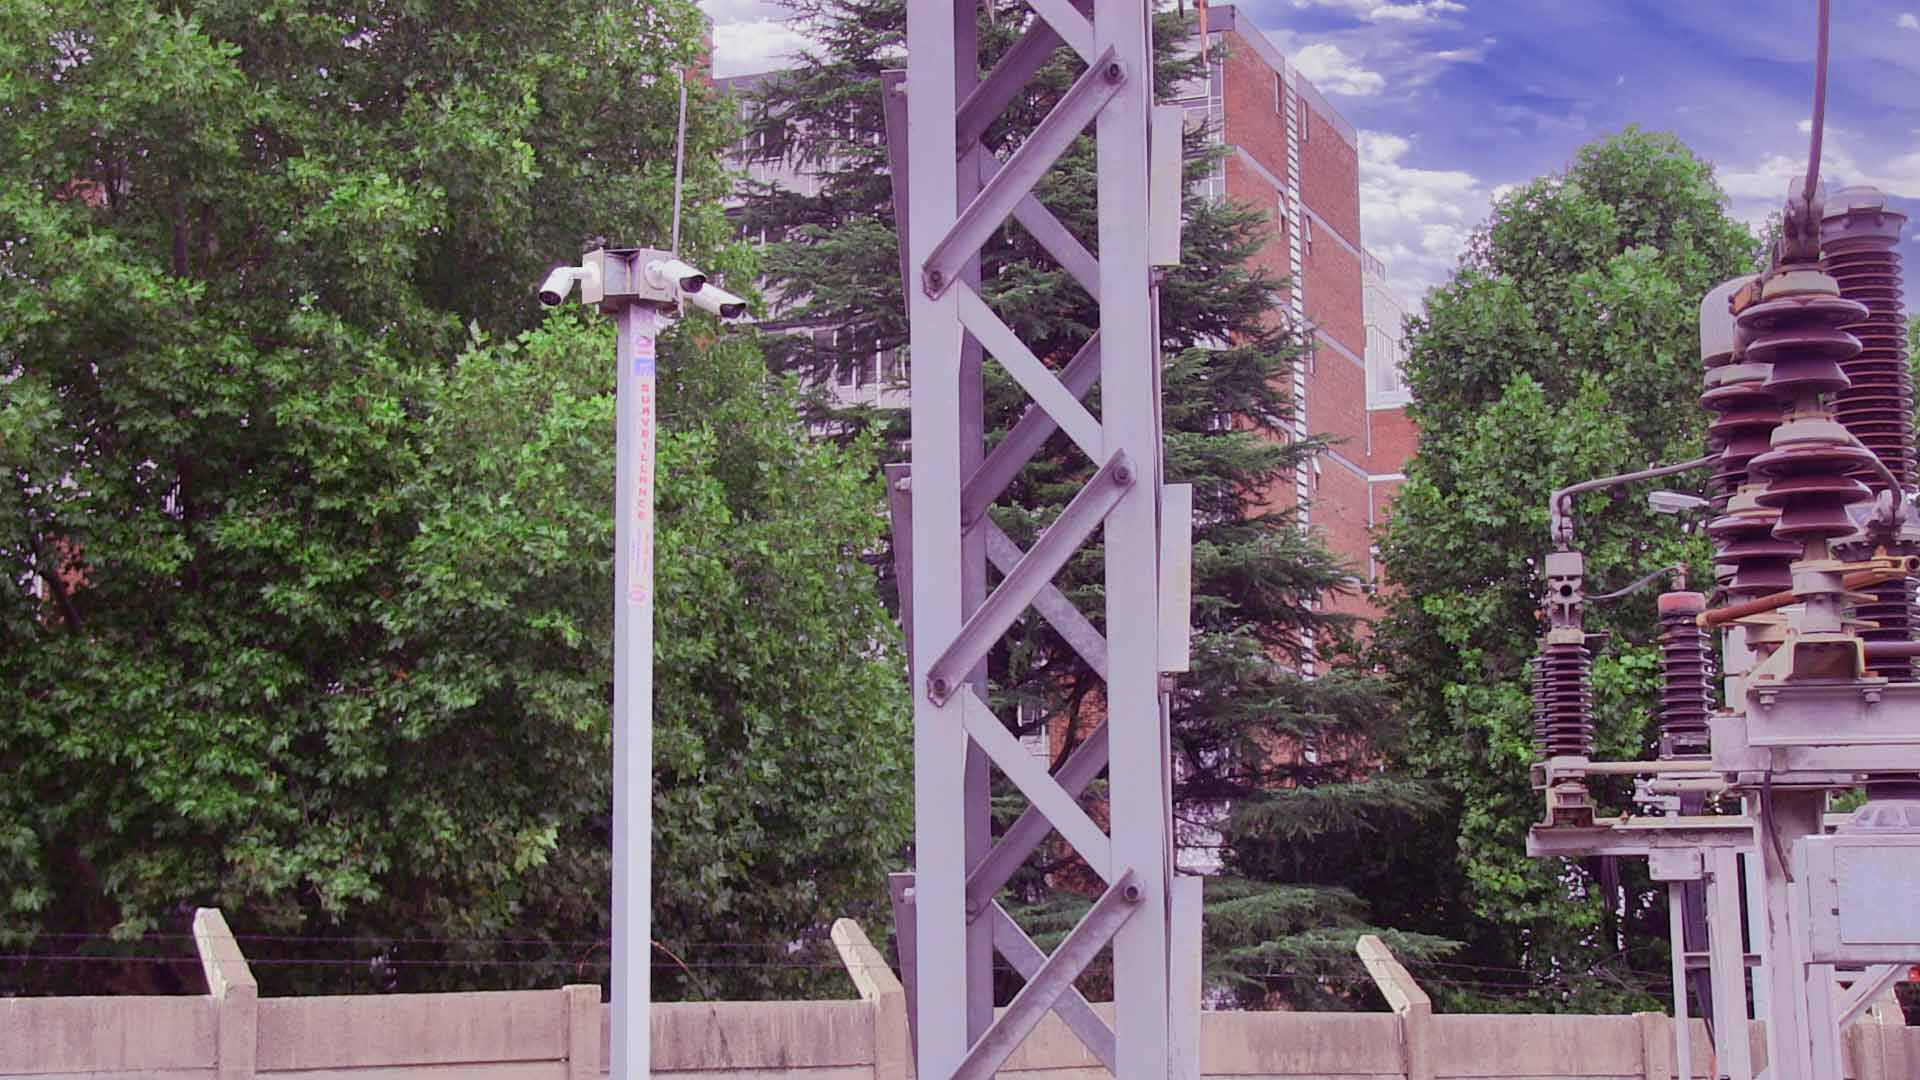 Surveillance camera systems installed inside a Electrical substation yard.